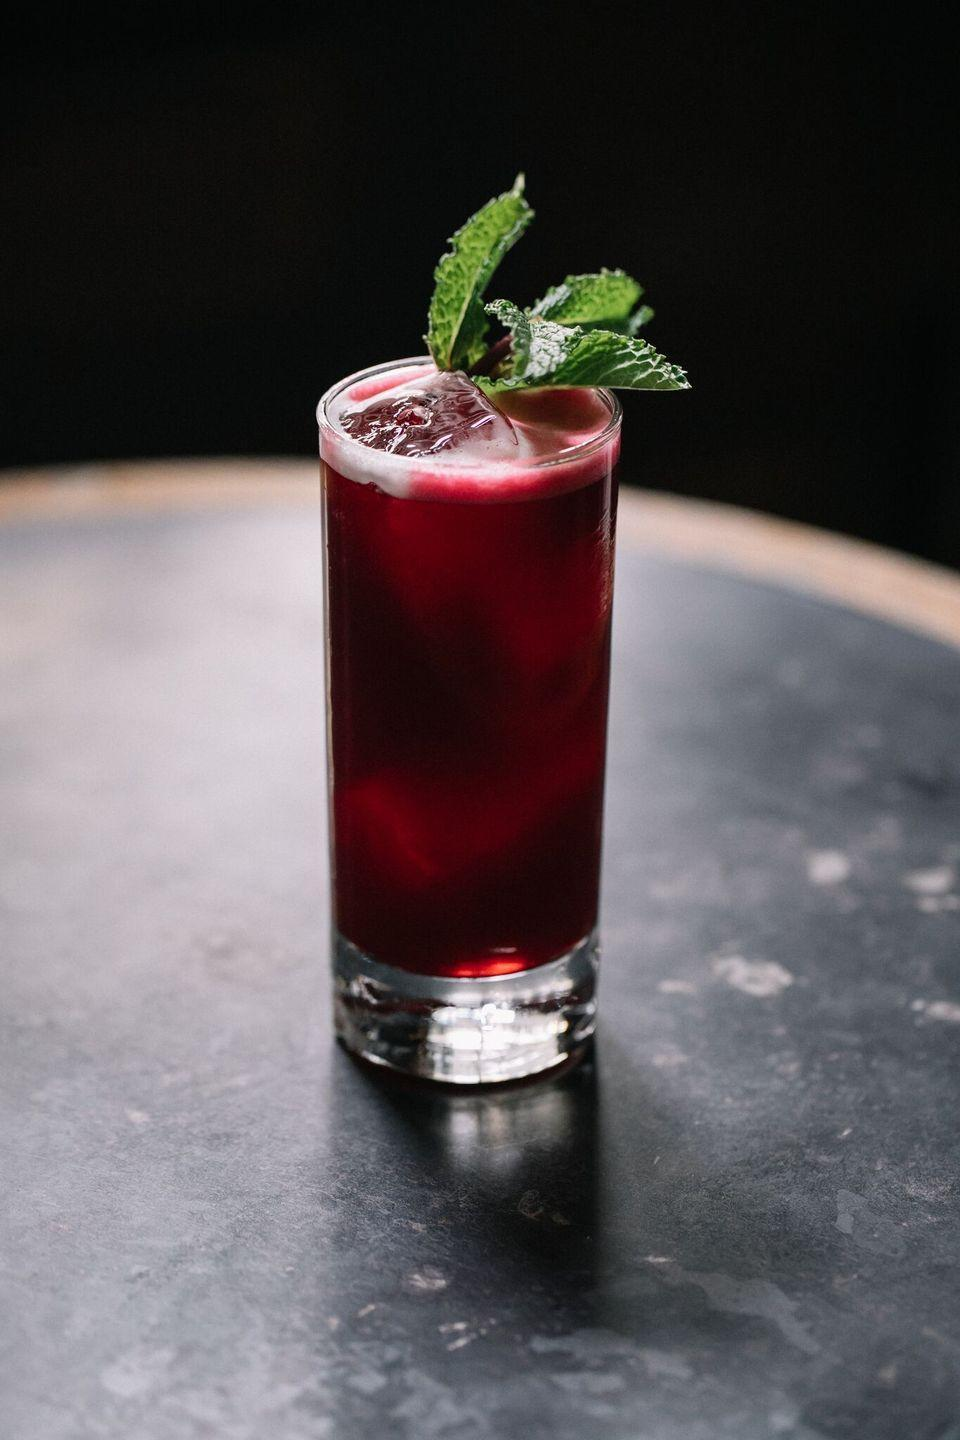 """<p><strong>Ingredients</strong></p><p>1 oz Mezcal<br>1 oz Pimms<br>1 oz beet juice<br>.25 ginger juice<br>.25 lemon juice<br>.25 simple syrup<br>.5 oz ginger beer<br>pinch mint</p><p><strong>Instructions</strong></p><p>Shake all ingredients except ginger beer together in a shaker tin with ice. Strain into a highball glass and top with ginger beer.</p><p><em>From <a href=""""http://ward3.com/"""" rel=""""nofollow noopener"""" target=""""_blank"""" data-ylk=""""slk:Ward III"""" class=""""link rapid-noclick-resp"""">Ward III</a> in New York City</em></p>"""